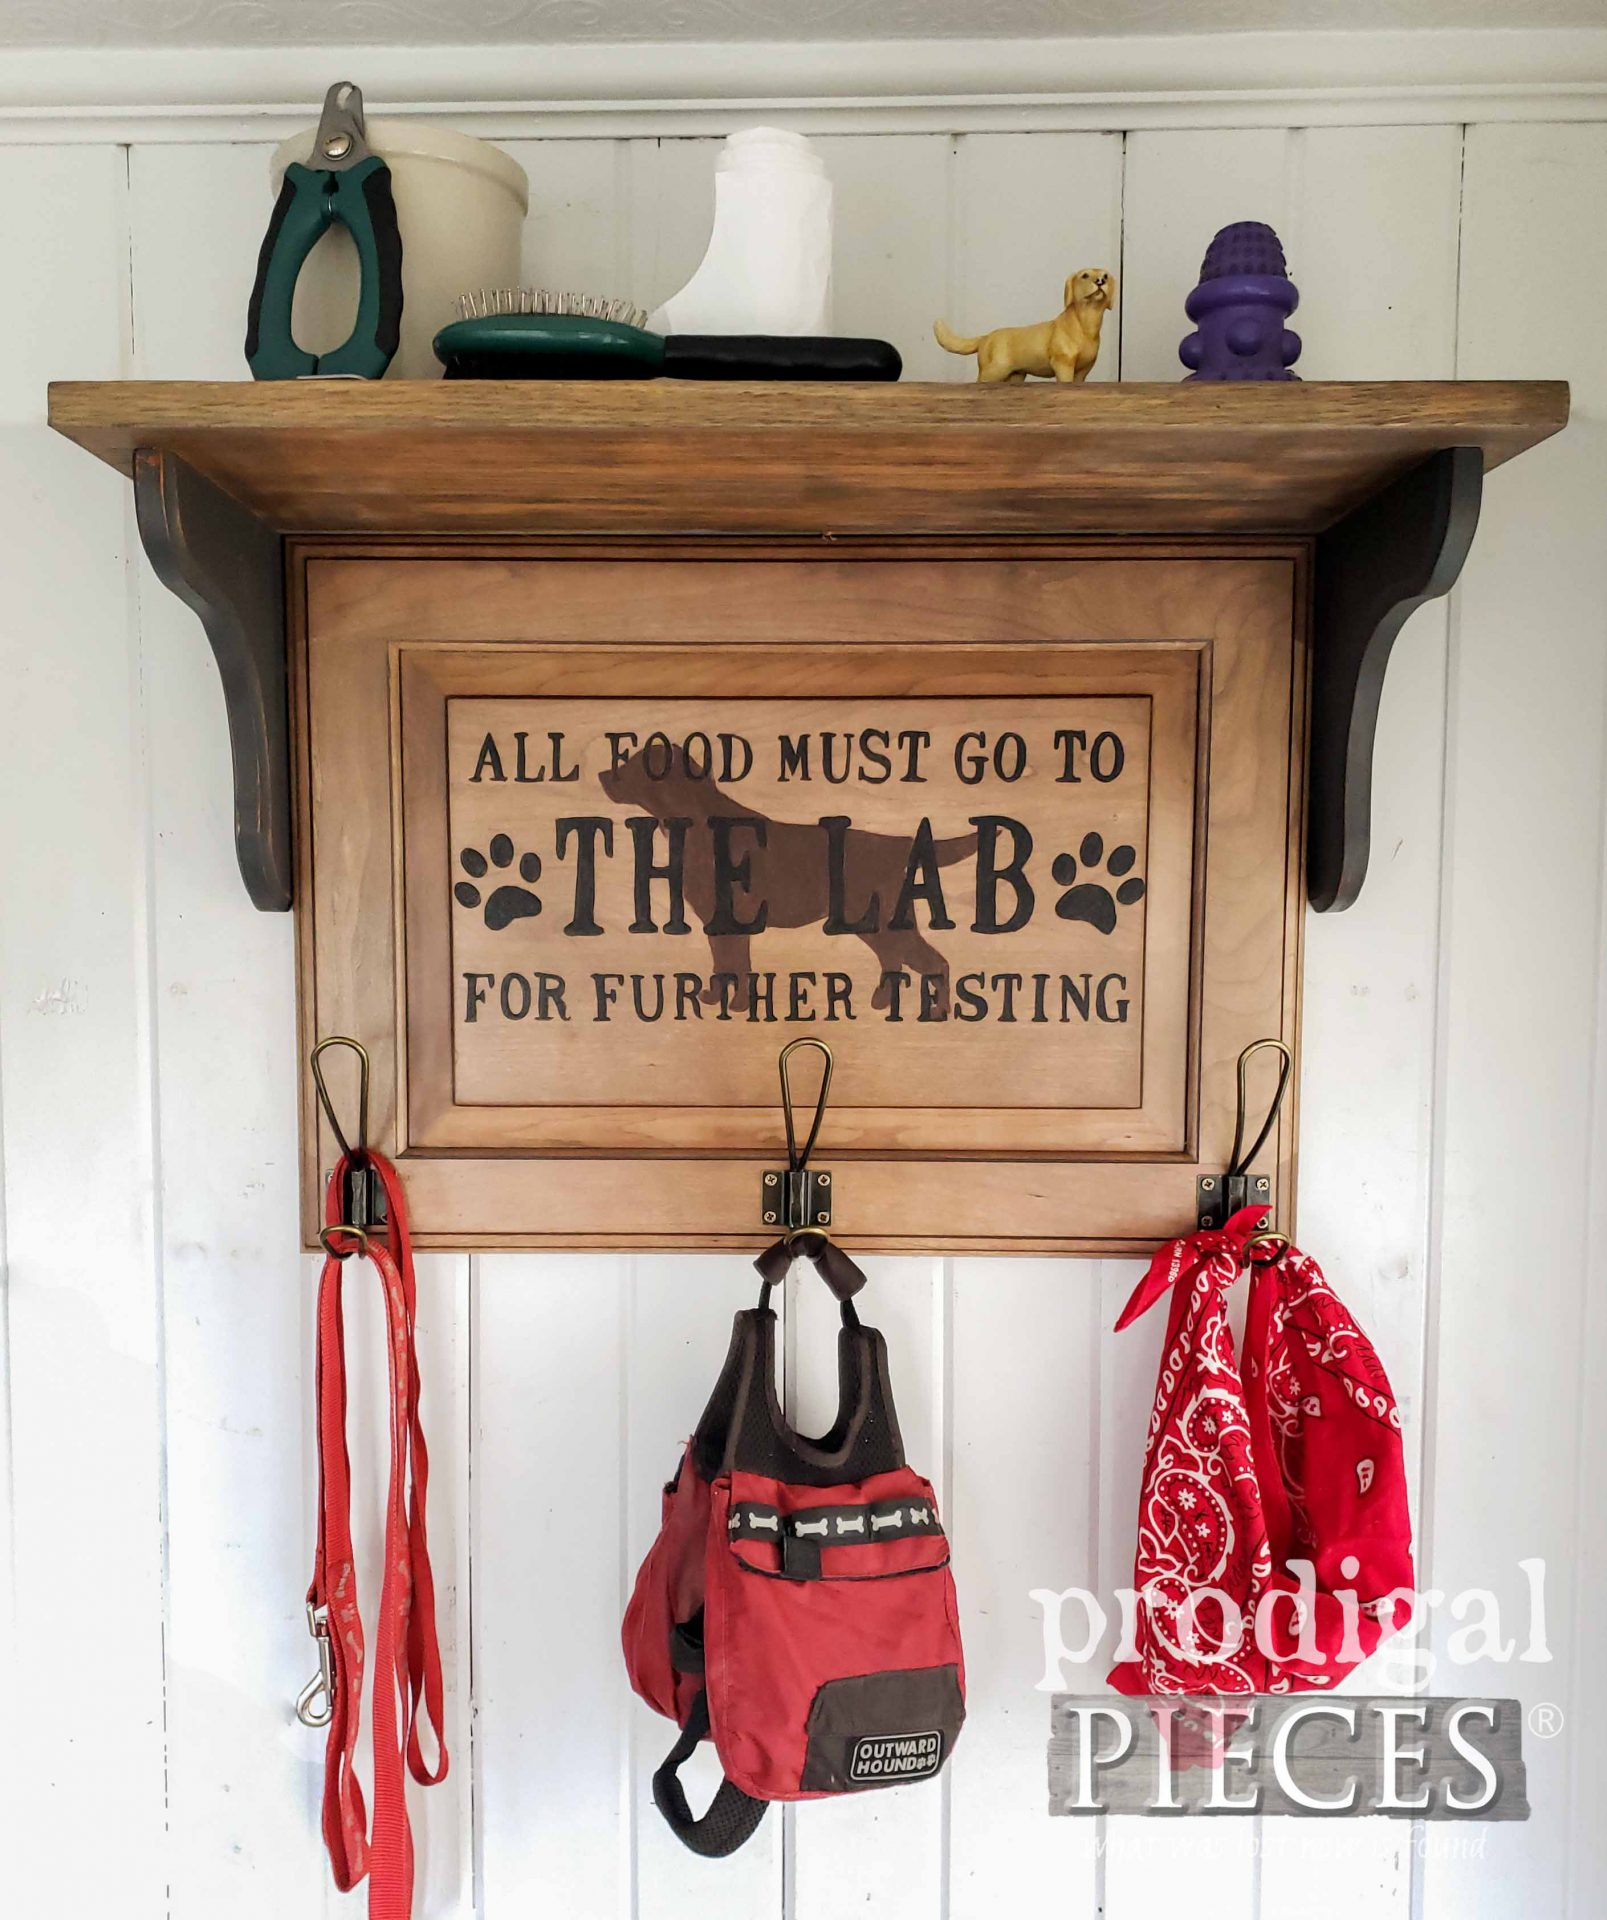 DIY Upcycled Pet Organizer Coat Rack made from Reclaimed Cupboard Door by Larissa of Prodigal Pieces | prodigalpieces.com #prodigalpieces #diy #home #pets #dogs #cats #homedecor